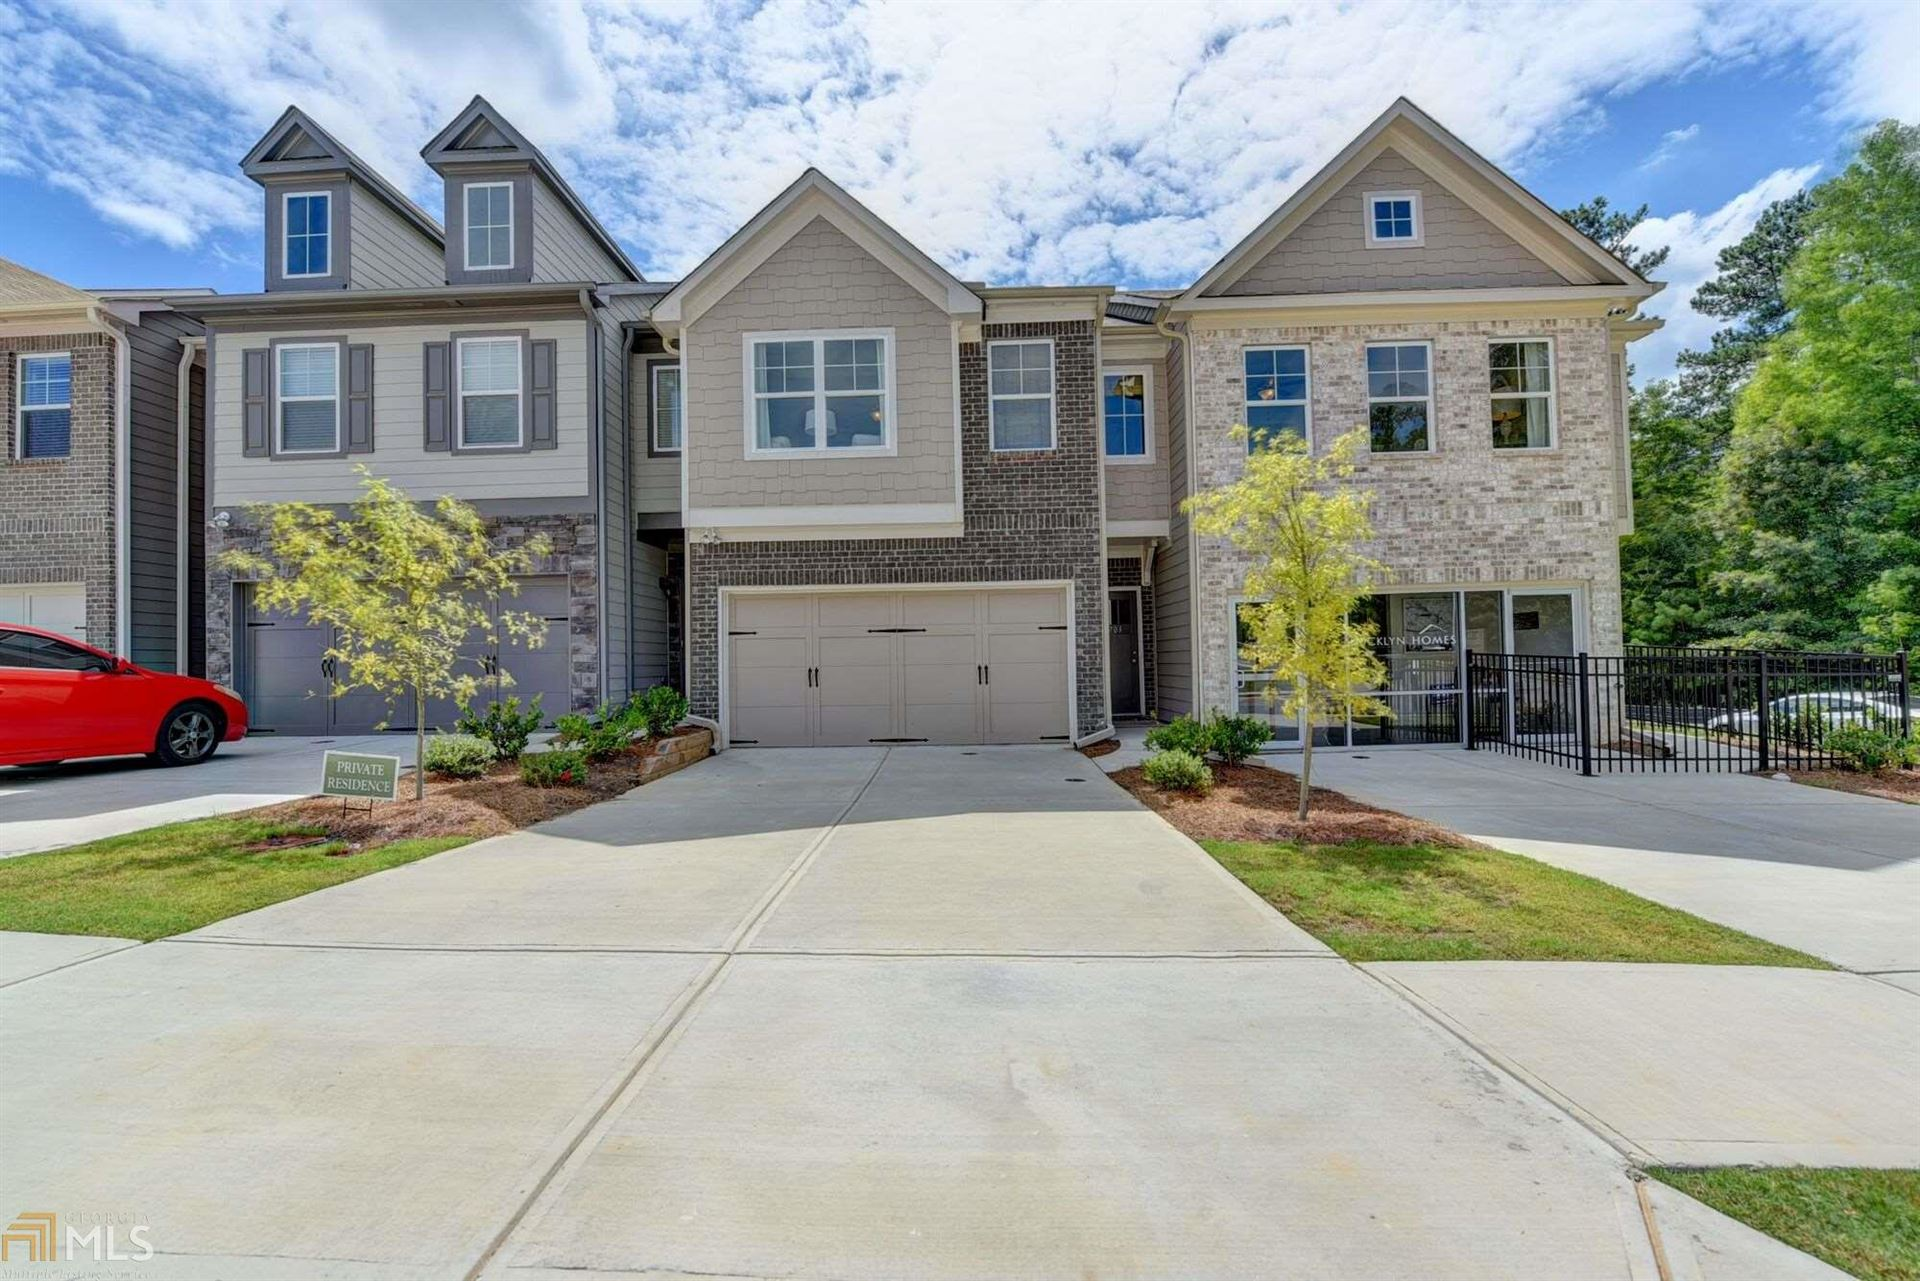 2309 Candy Ln, Conyers, GA 30094 - #: 8812535